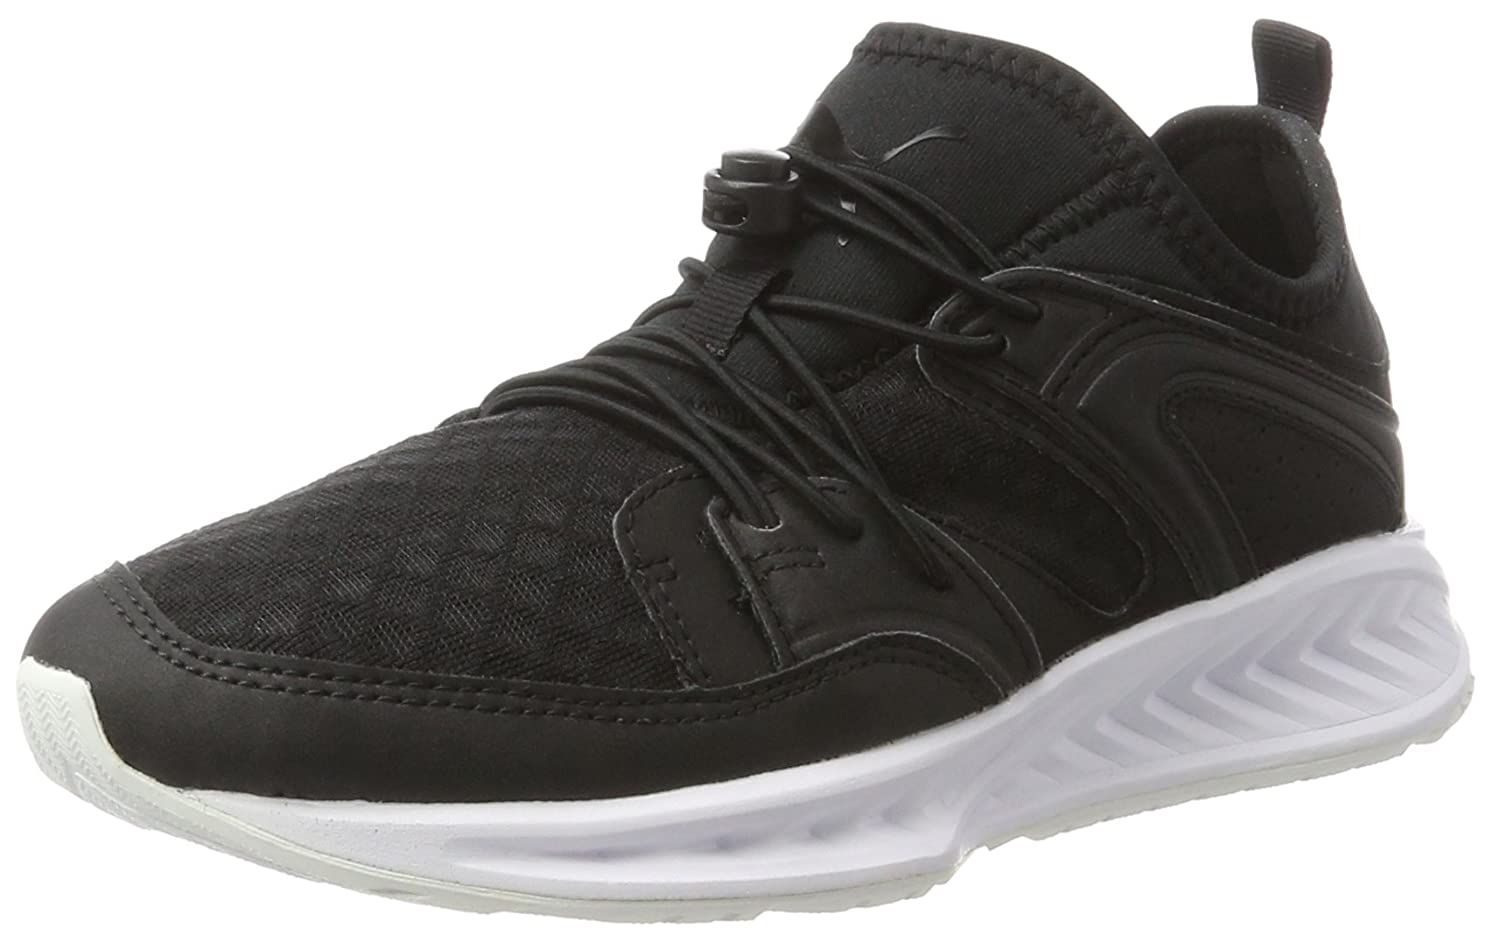 Puma Unisex-Erwachsene Blaze Ignite Plus Breathe Low-Top  38.5 EU|Schwarz (Puma Black-puma Black-puma White 01)